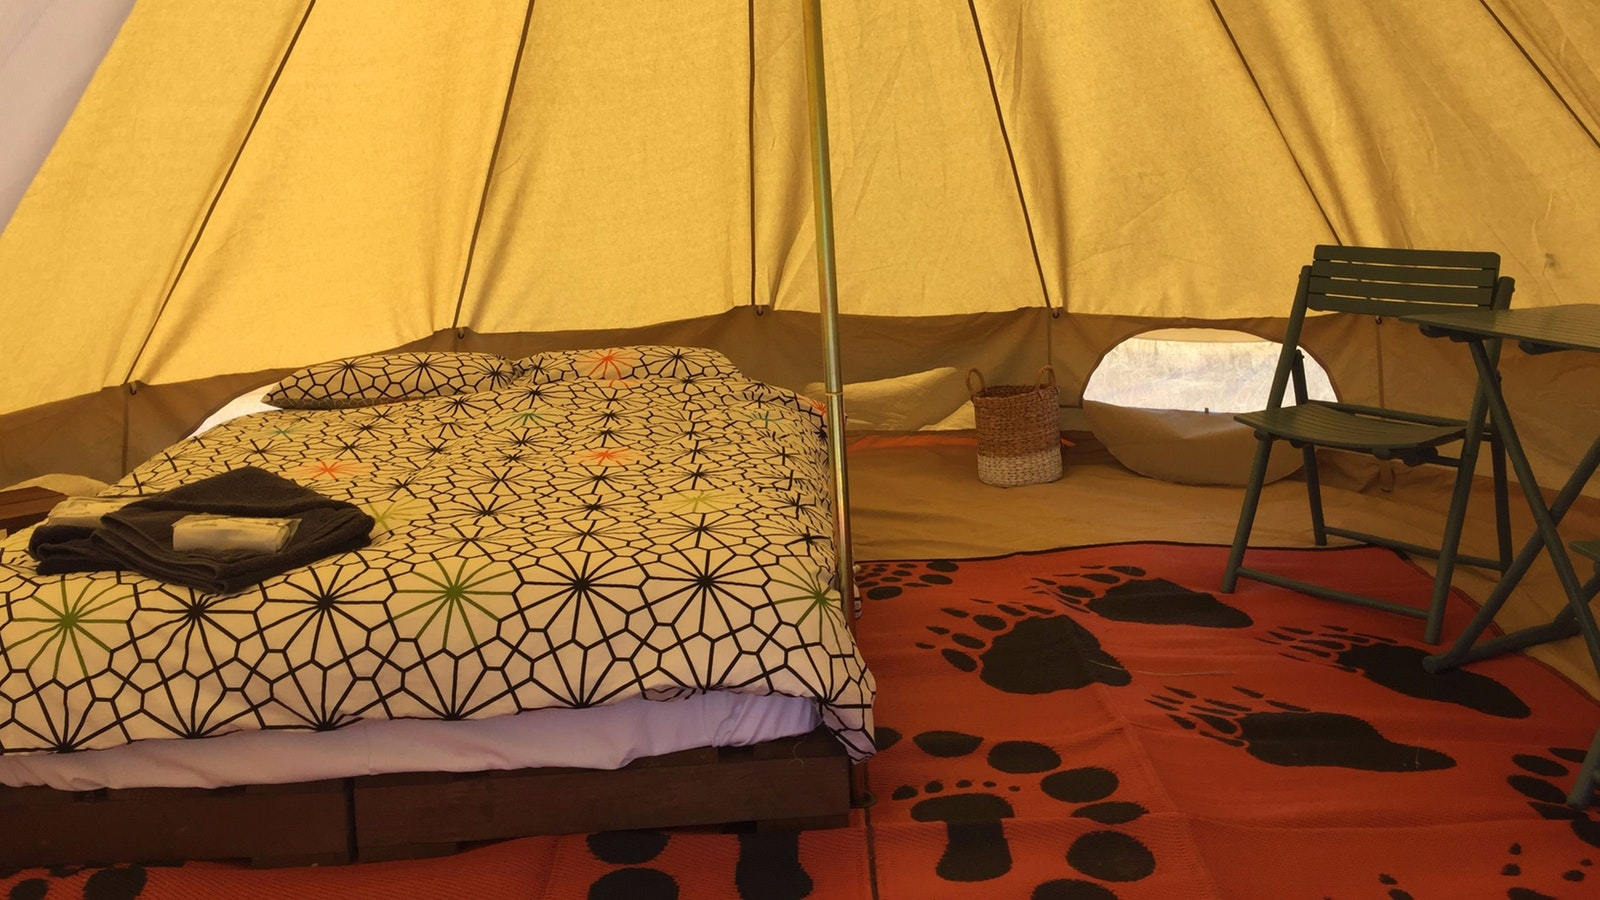 Mokoan Glamping tent and bedding